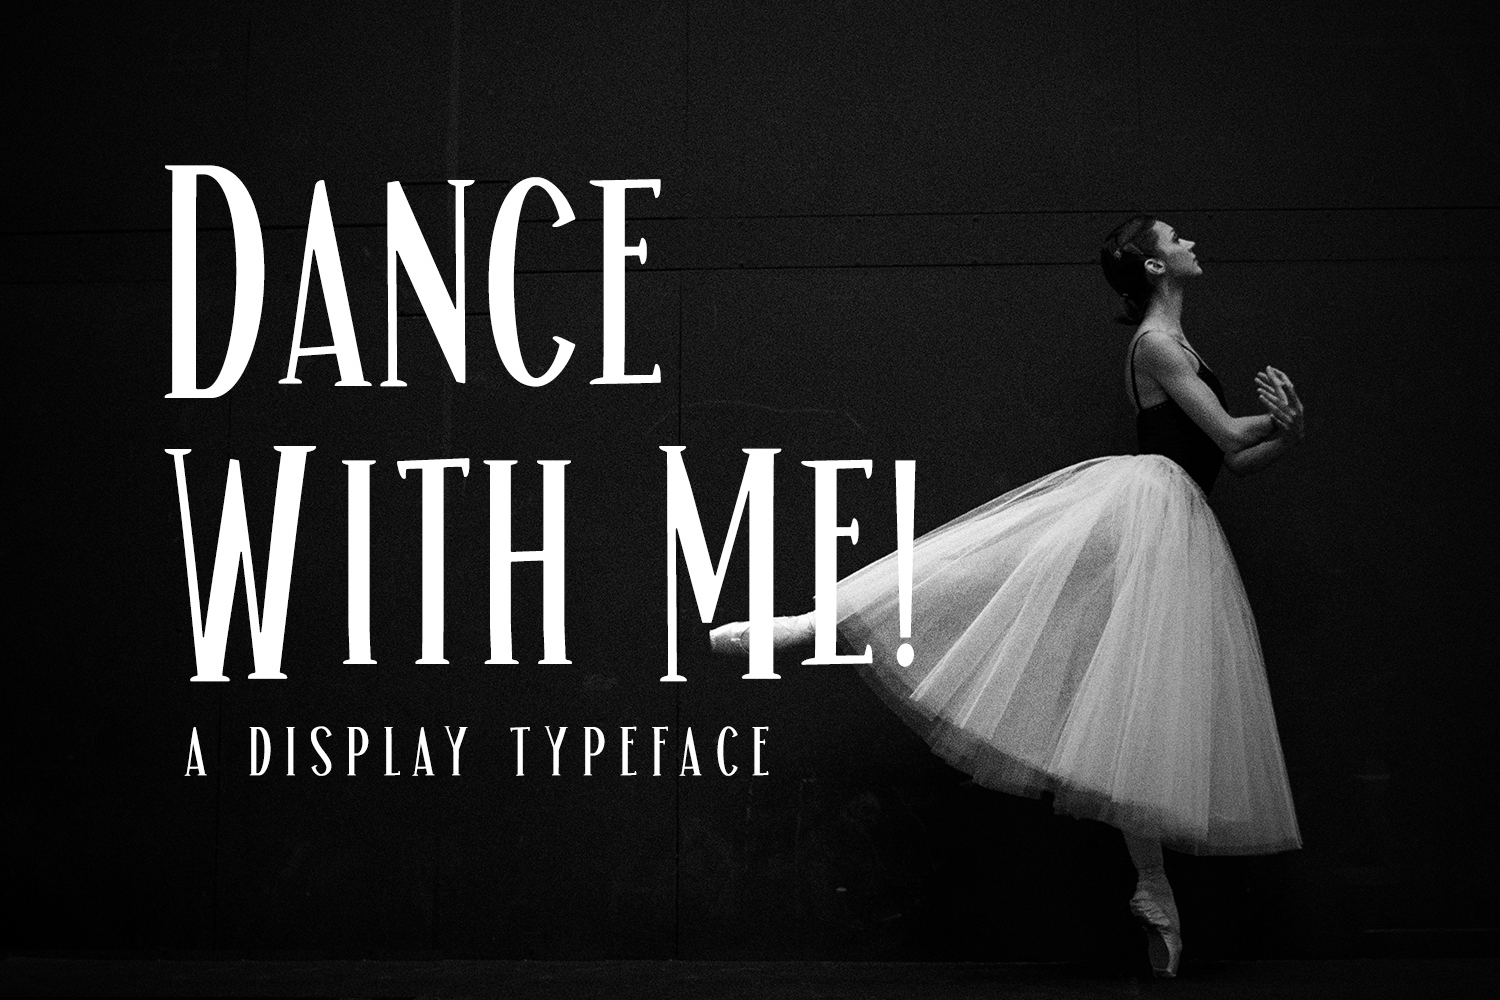 Dance With Me! example image 1